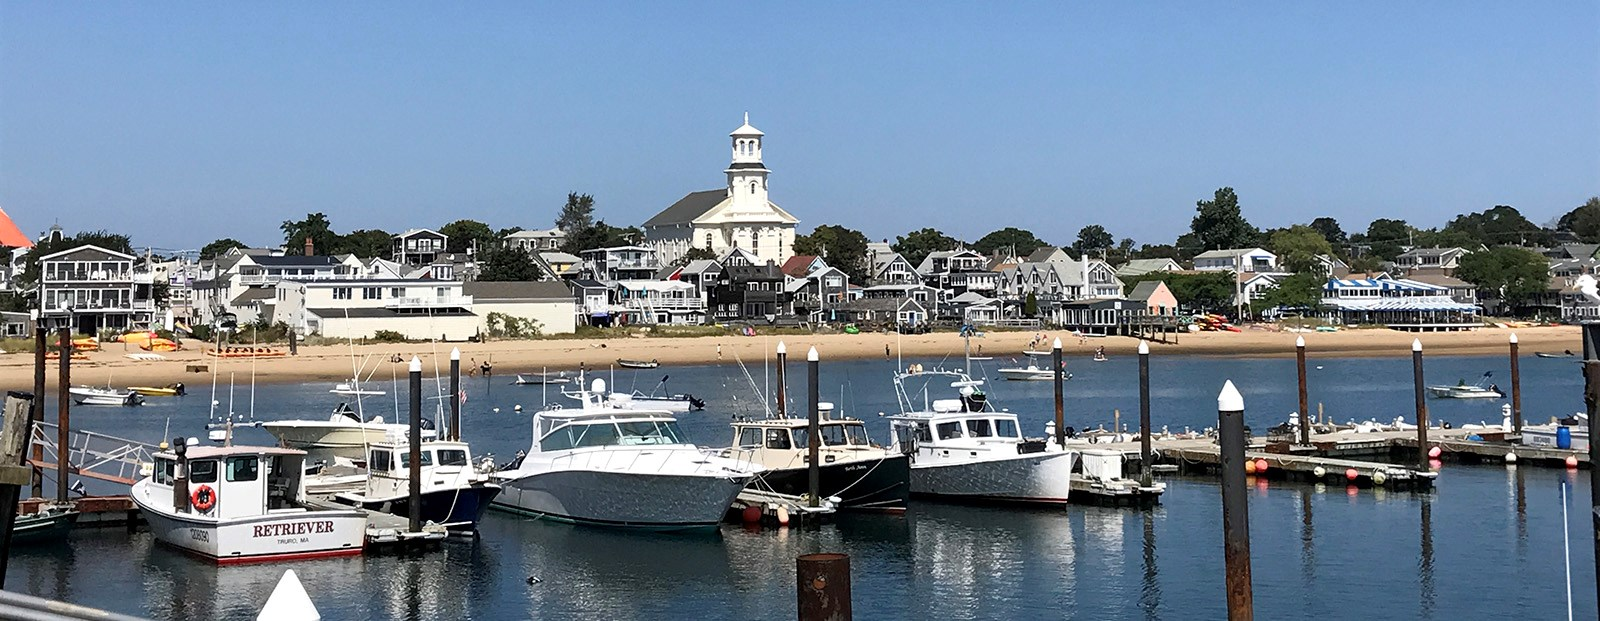 Don't miss these spots when you spend a day in Provincetown!